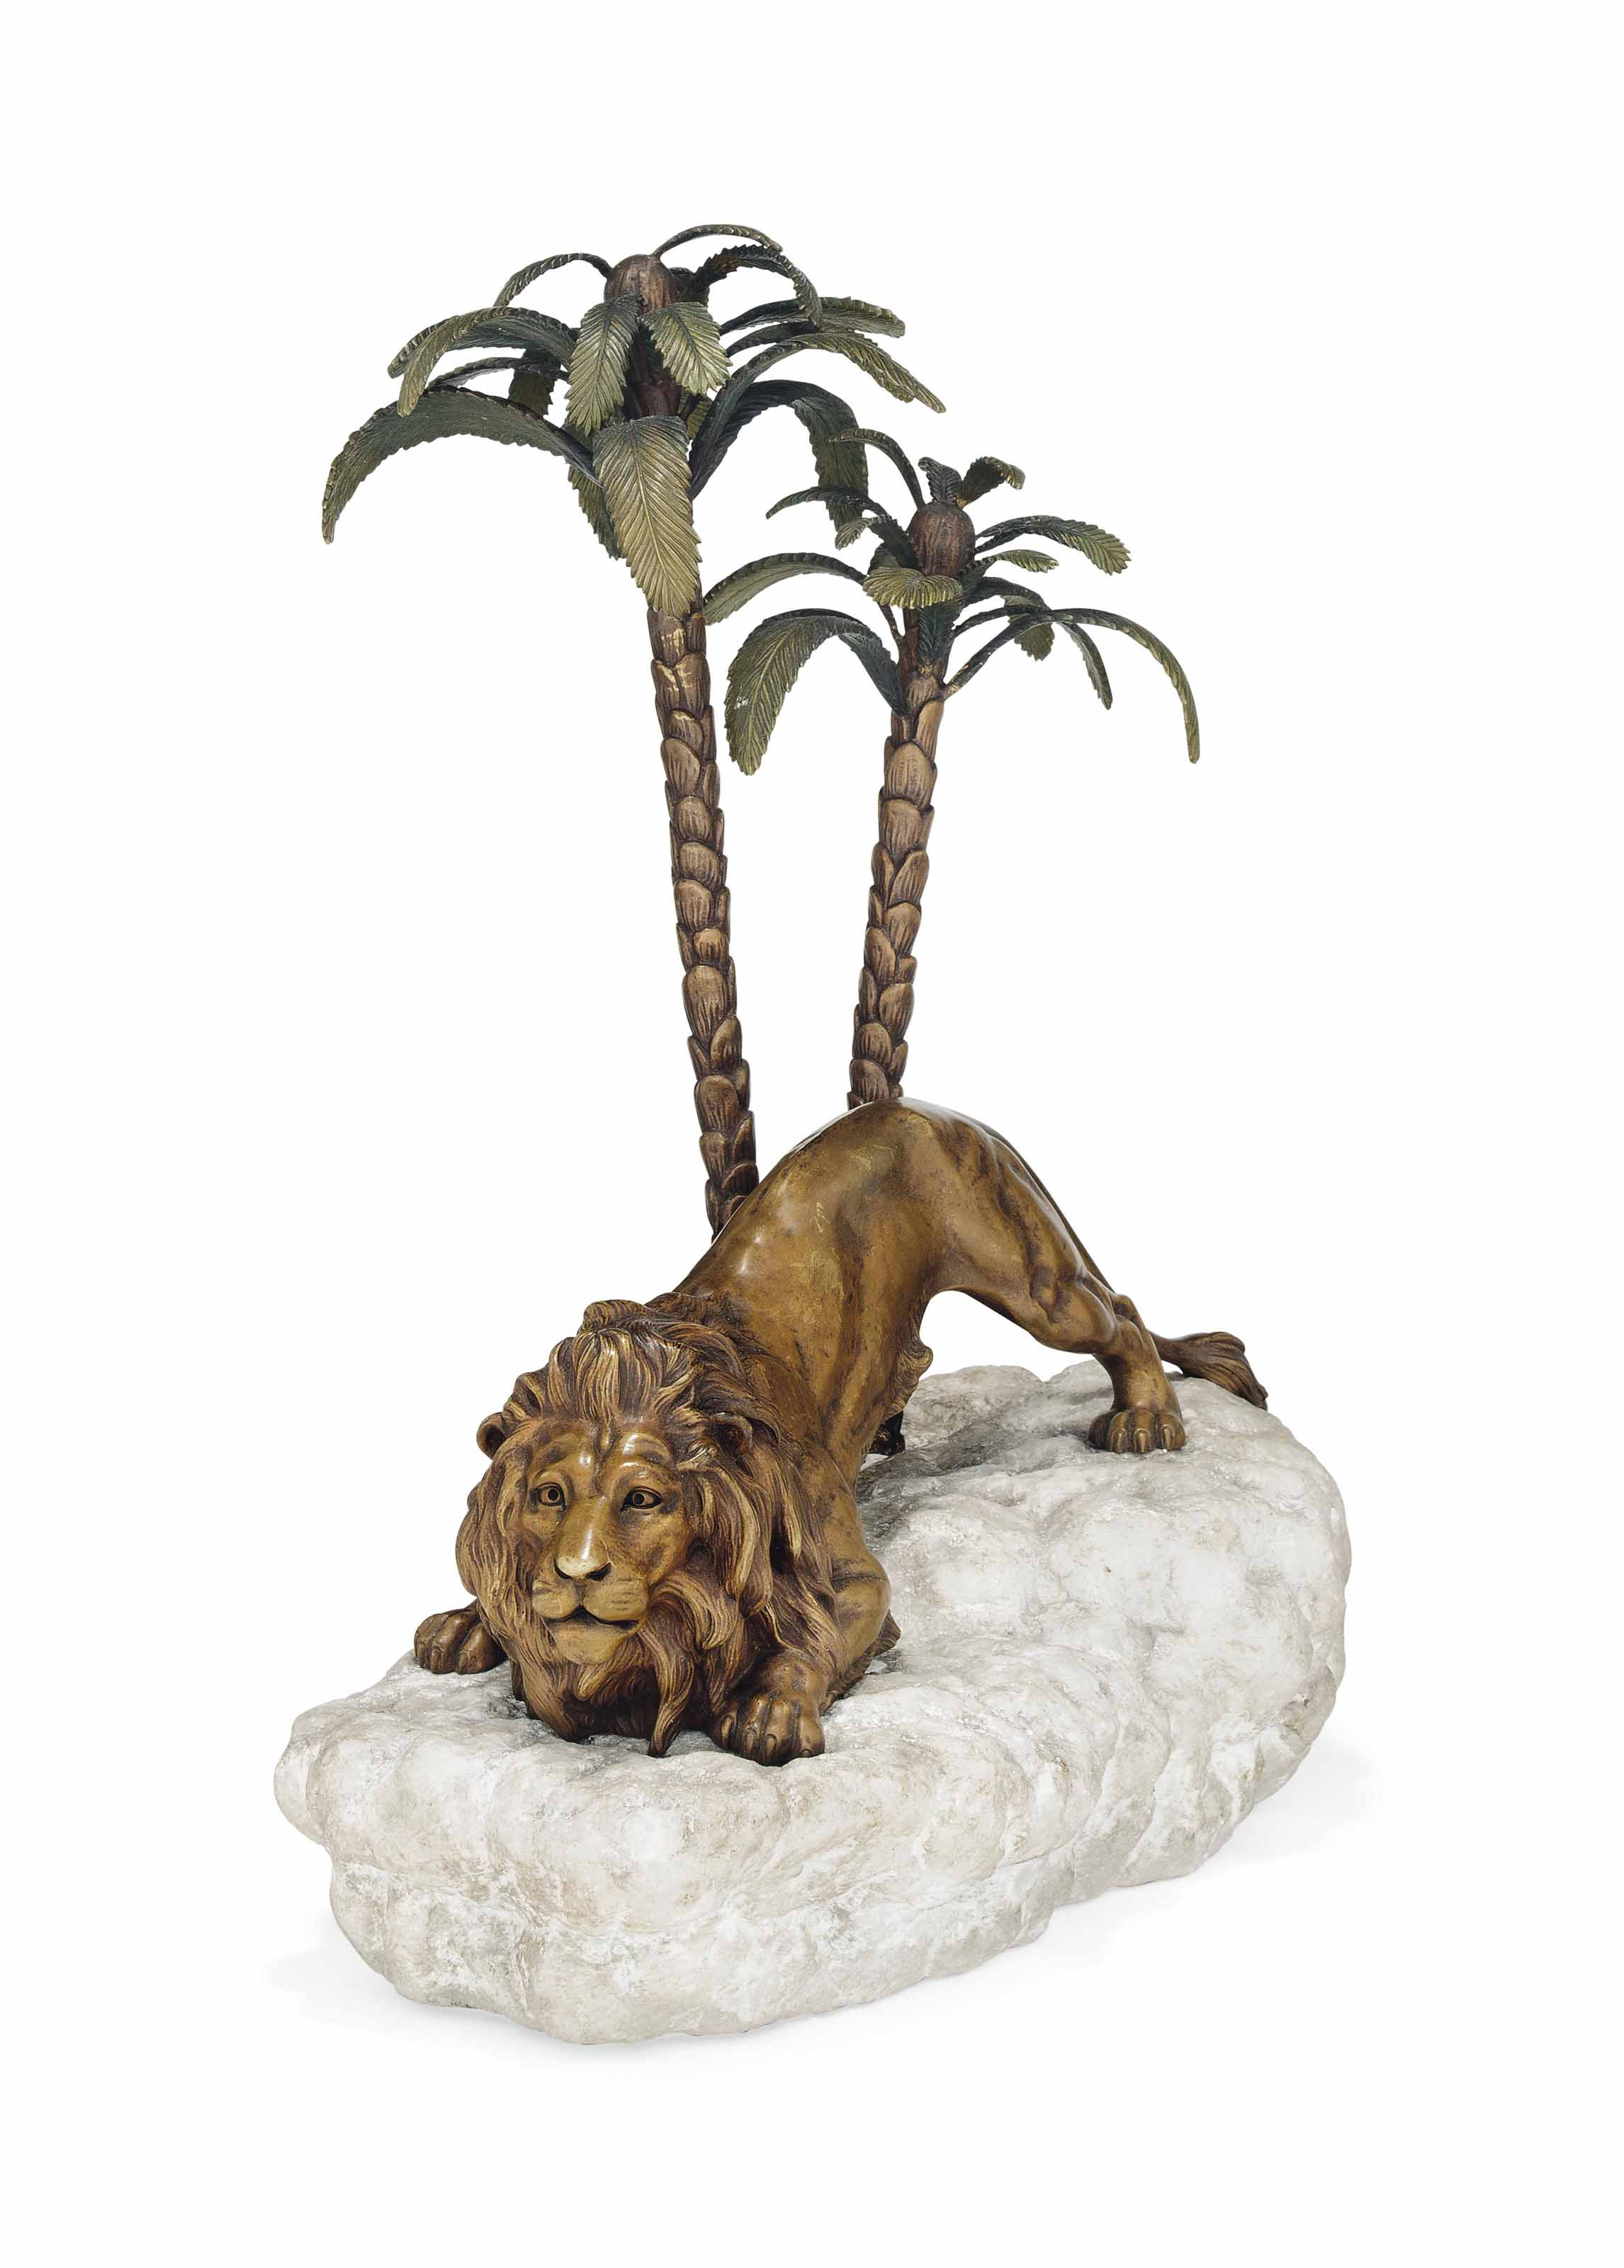 A PATINATED AND COLD-PAINTED BRONZE ATTRIBUTED TO FRANZ XAVIER BERGMANN